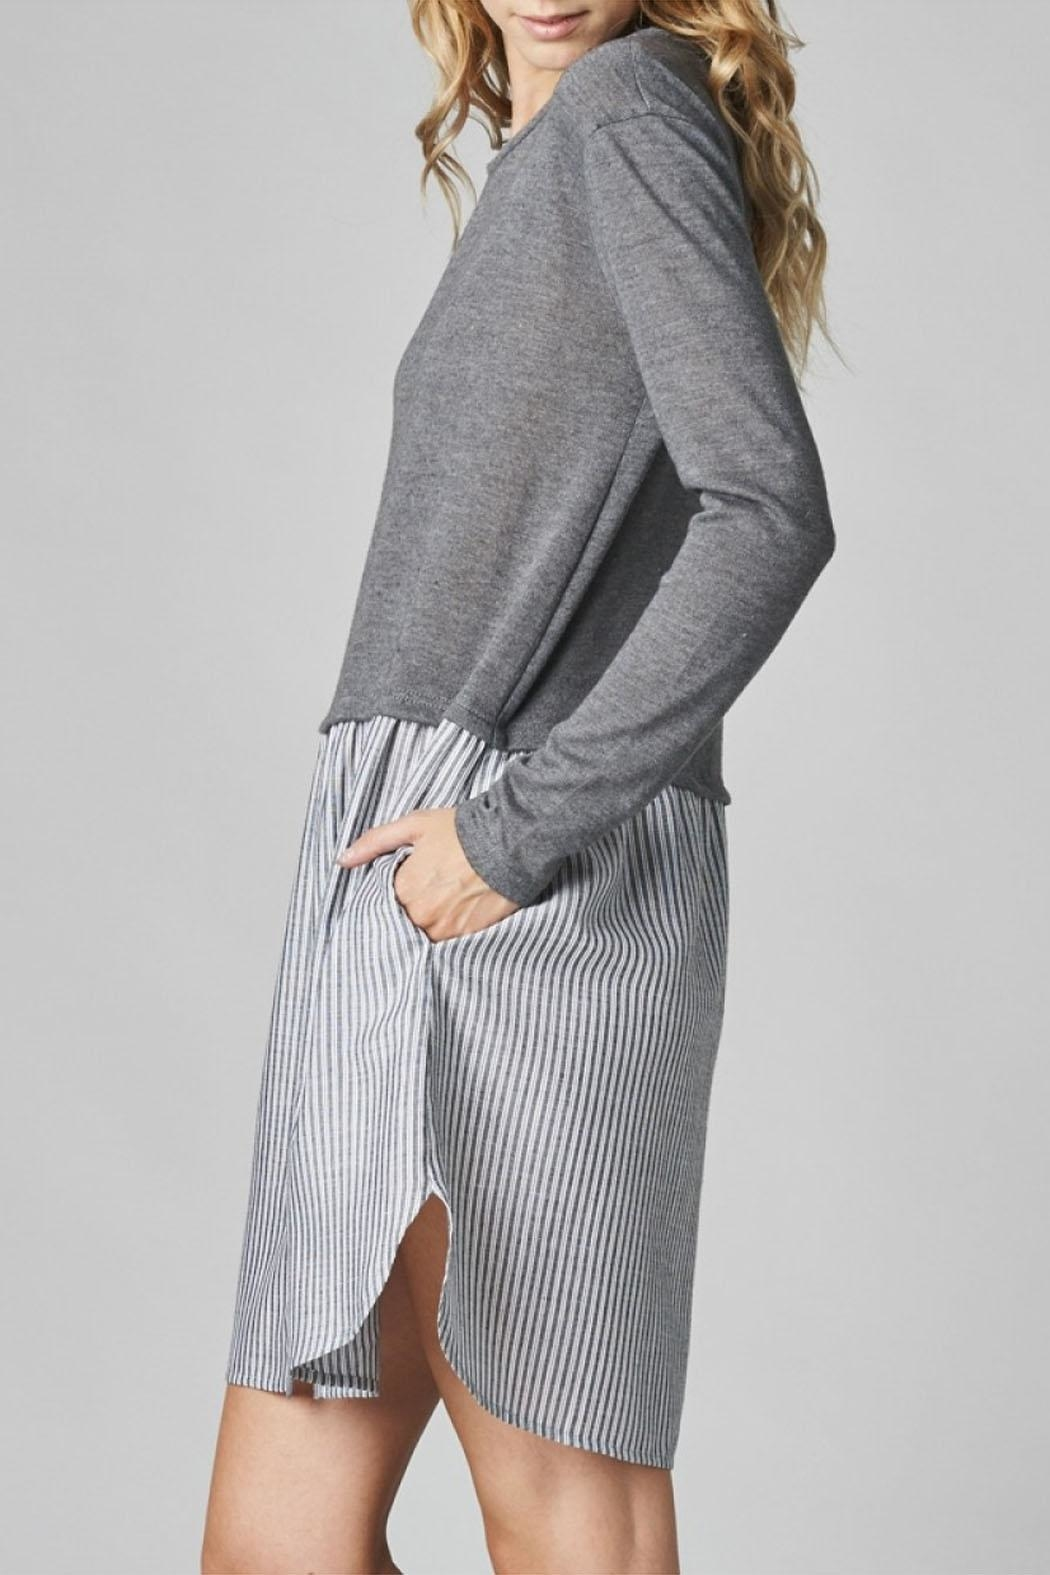 Cotton Bleu Knit Pullover Combo Dress - Front Full Image